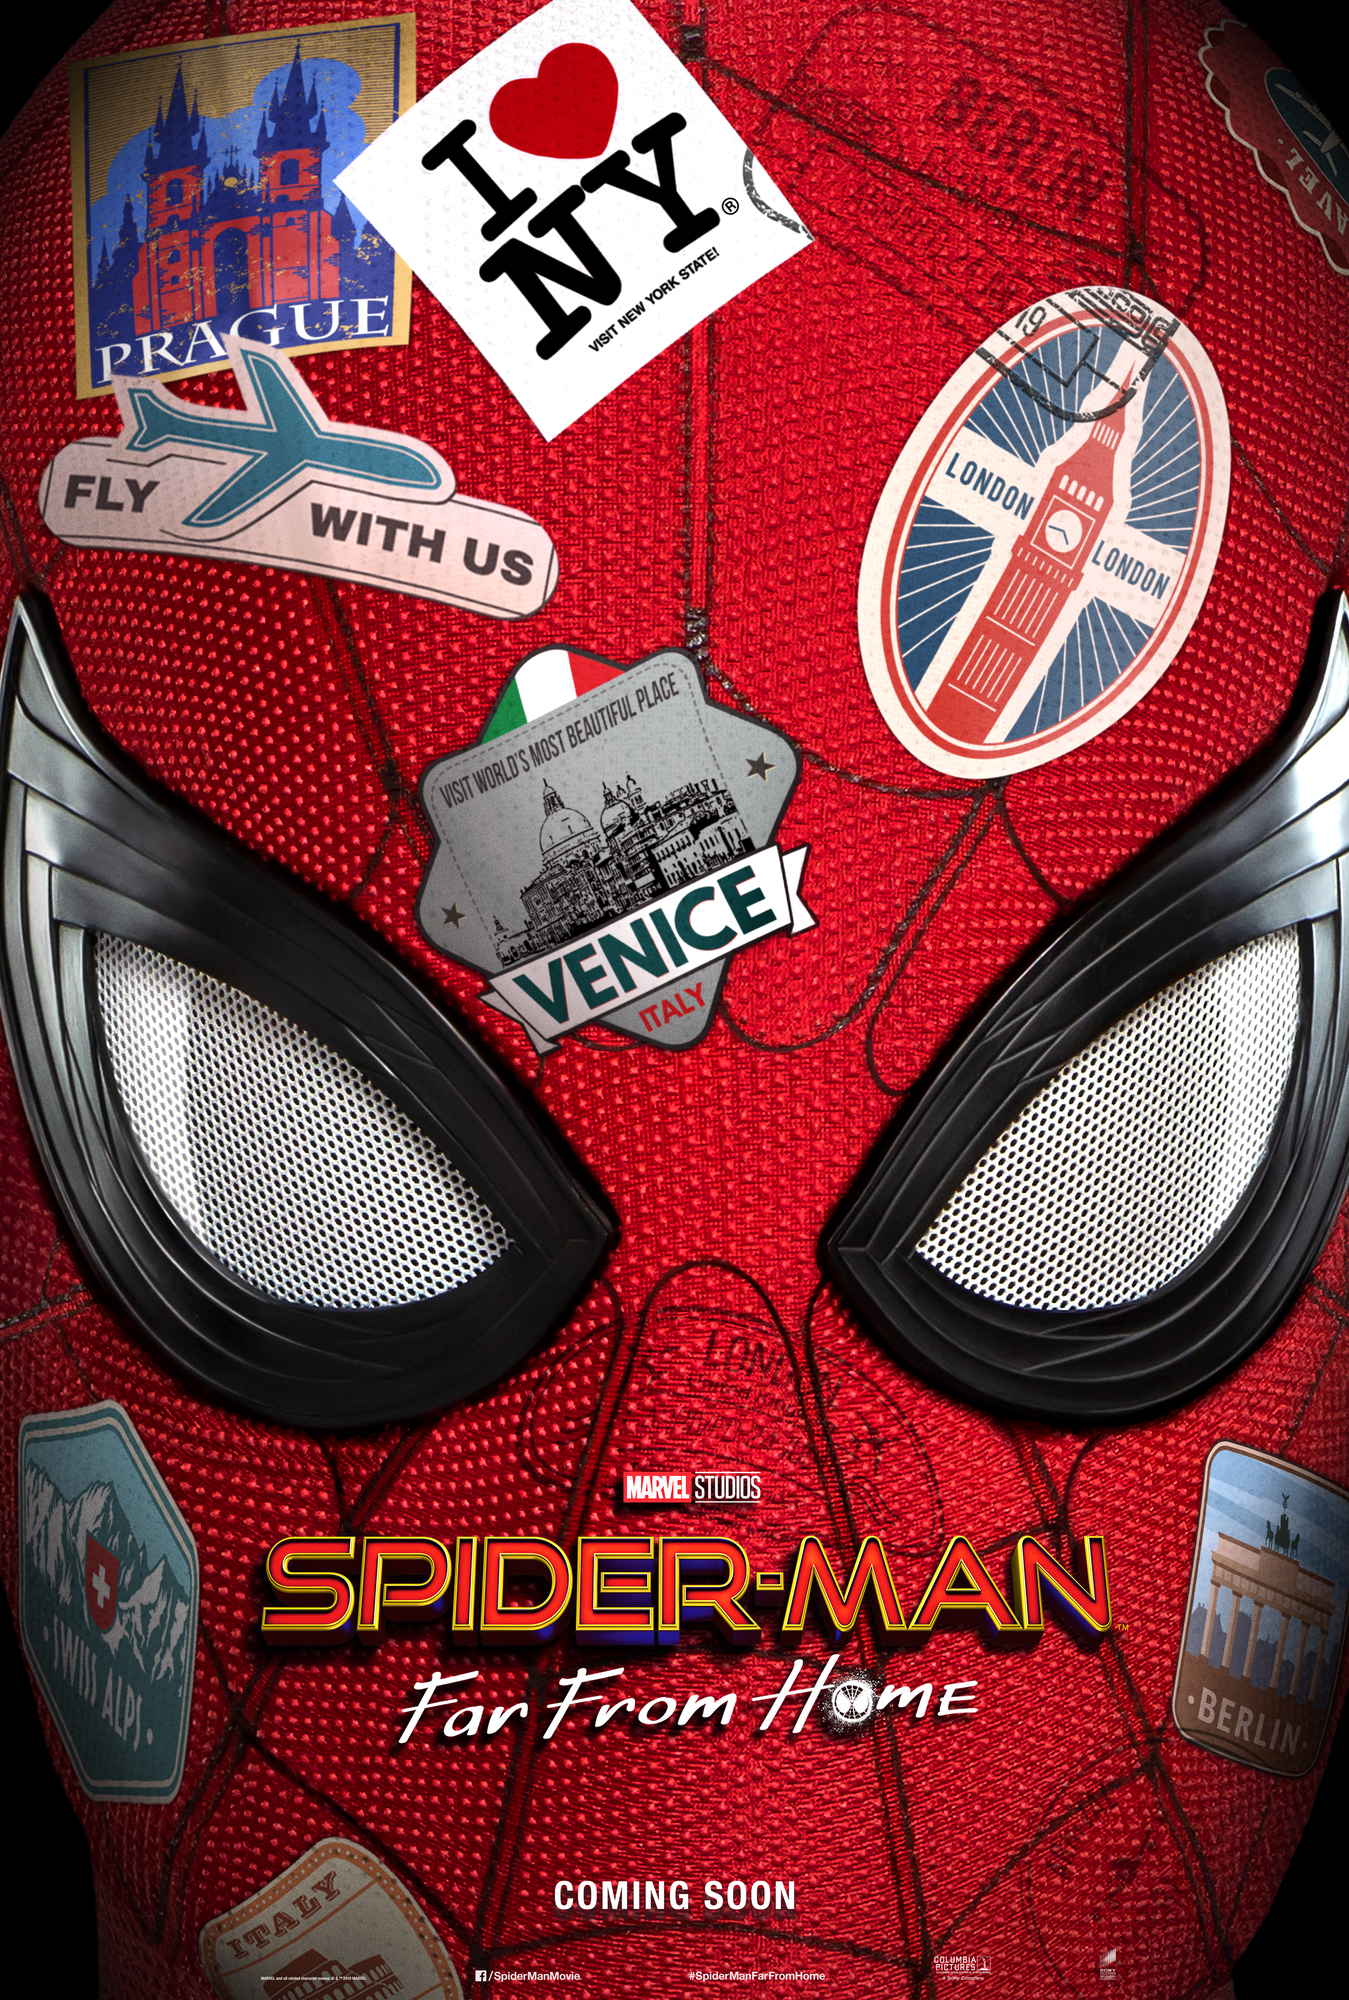 SPIDER-MAN: FAR FROM HOME - IN CINEMAS NOW